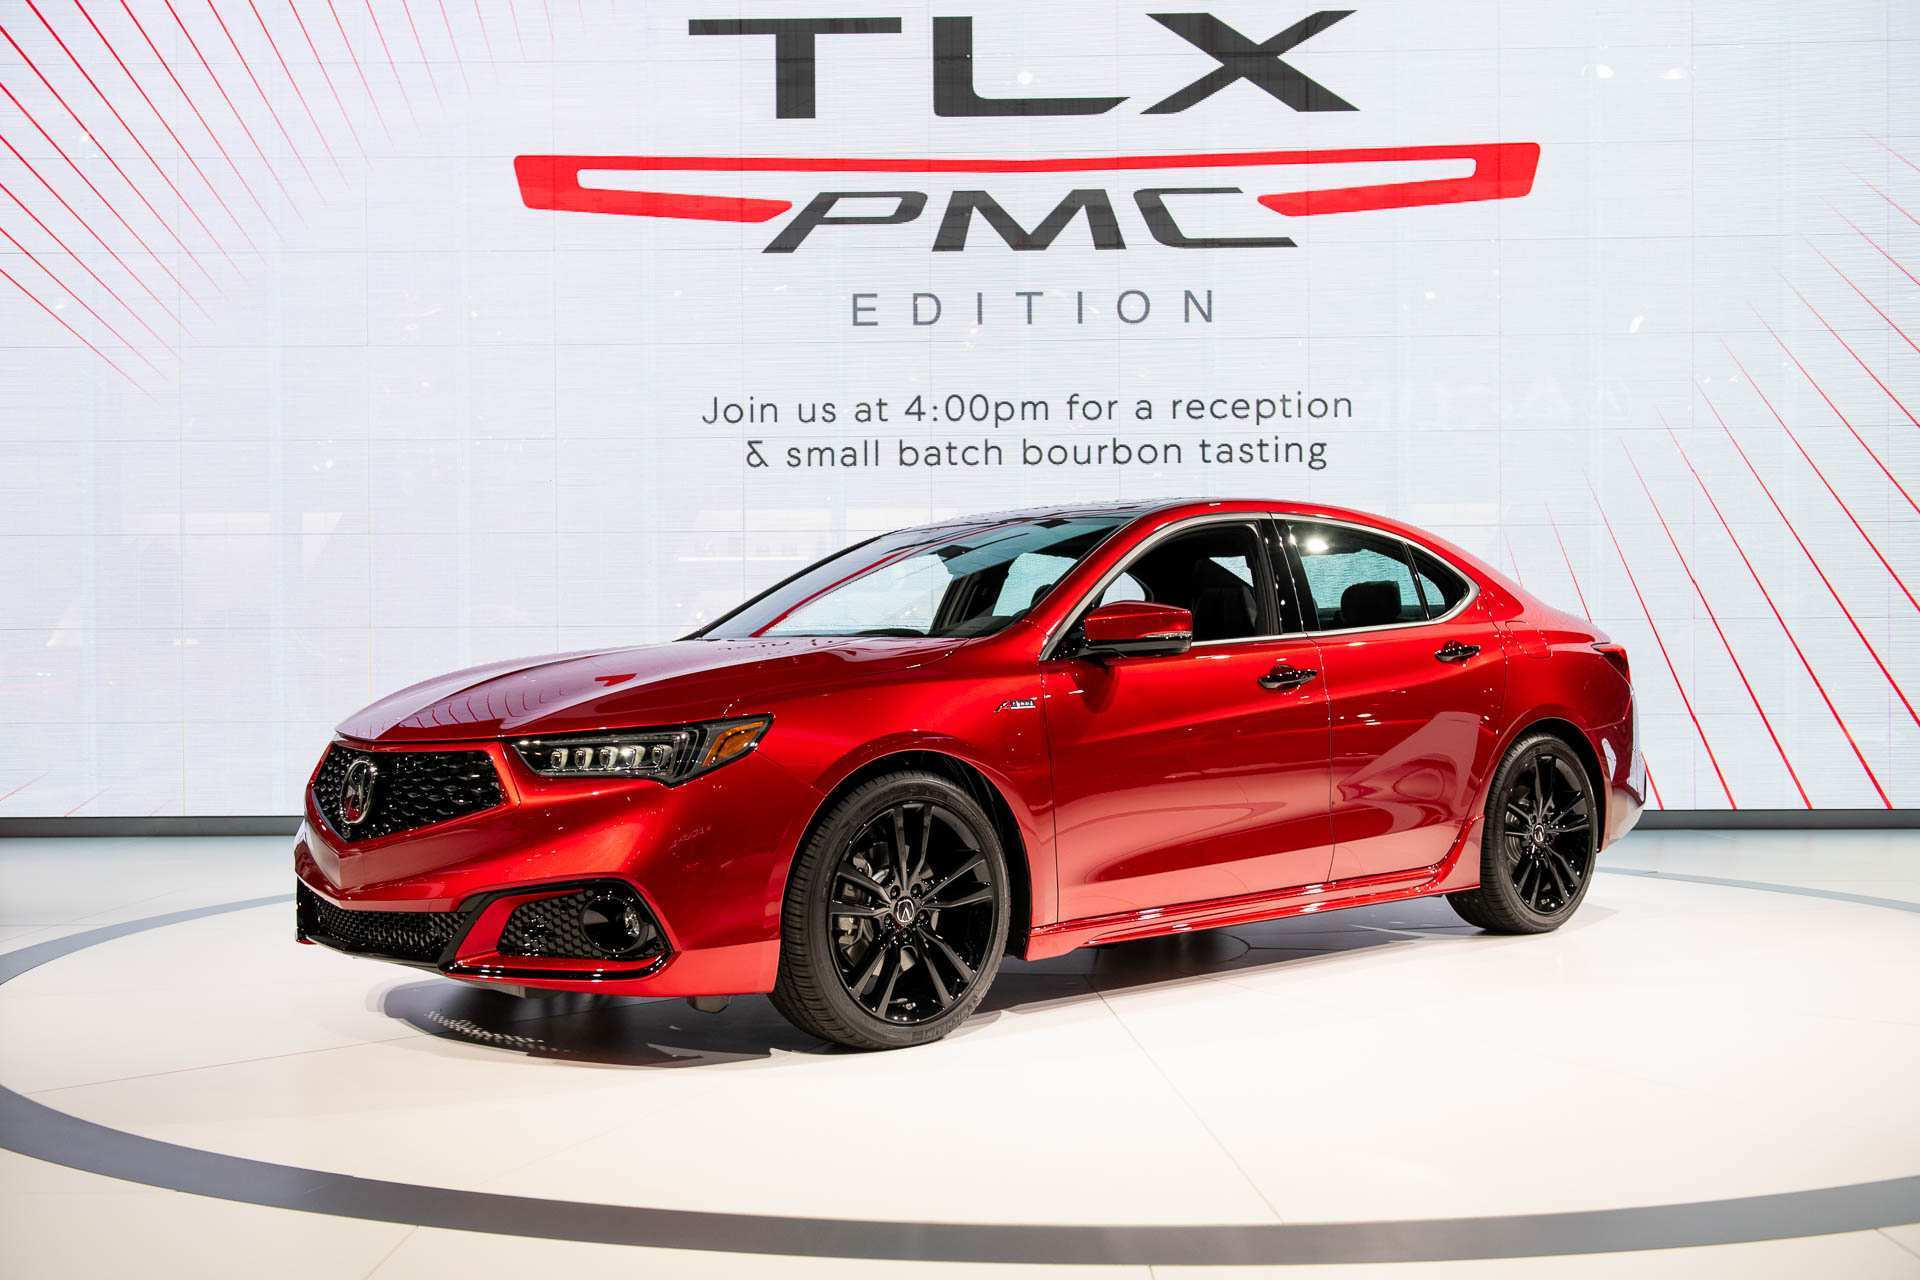 82 Concept of 2020 Acura Tlx Pmc Edition Specs Rumors with 2020 Acura Tlx Pmc Edition Specs